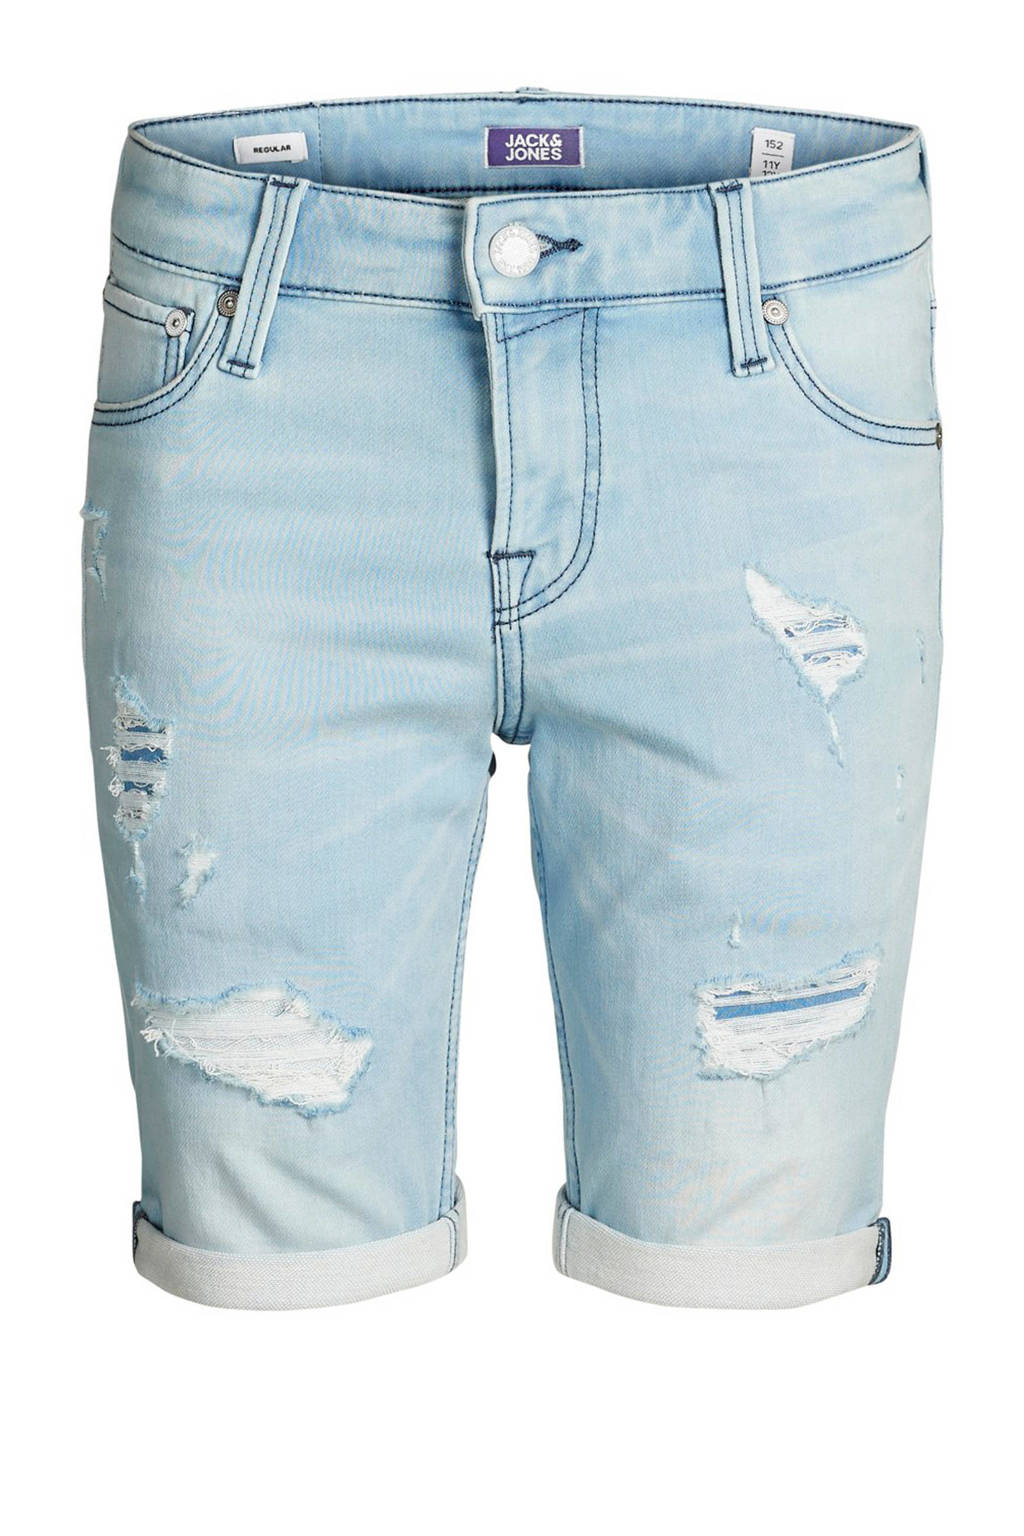 Jack & Jones Junior jeans bermuda Jjicon met slijtage, Light denim